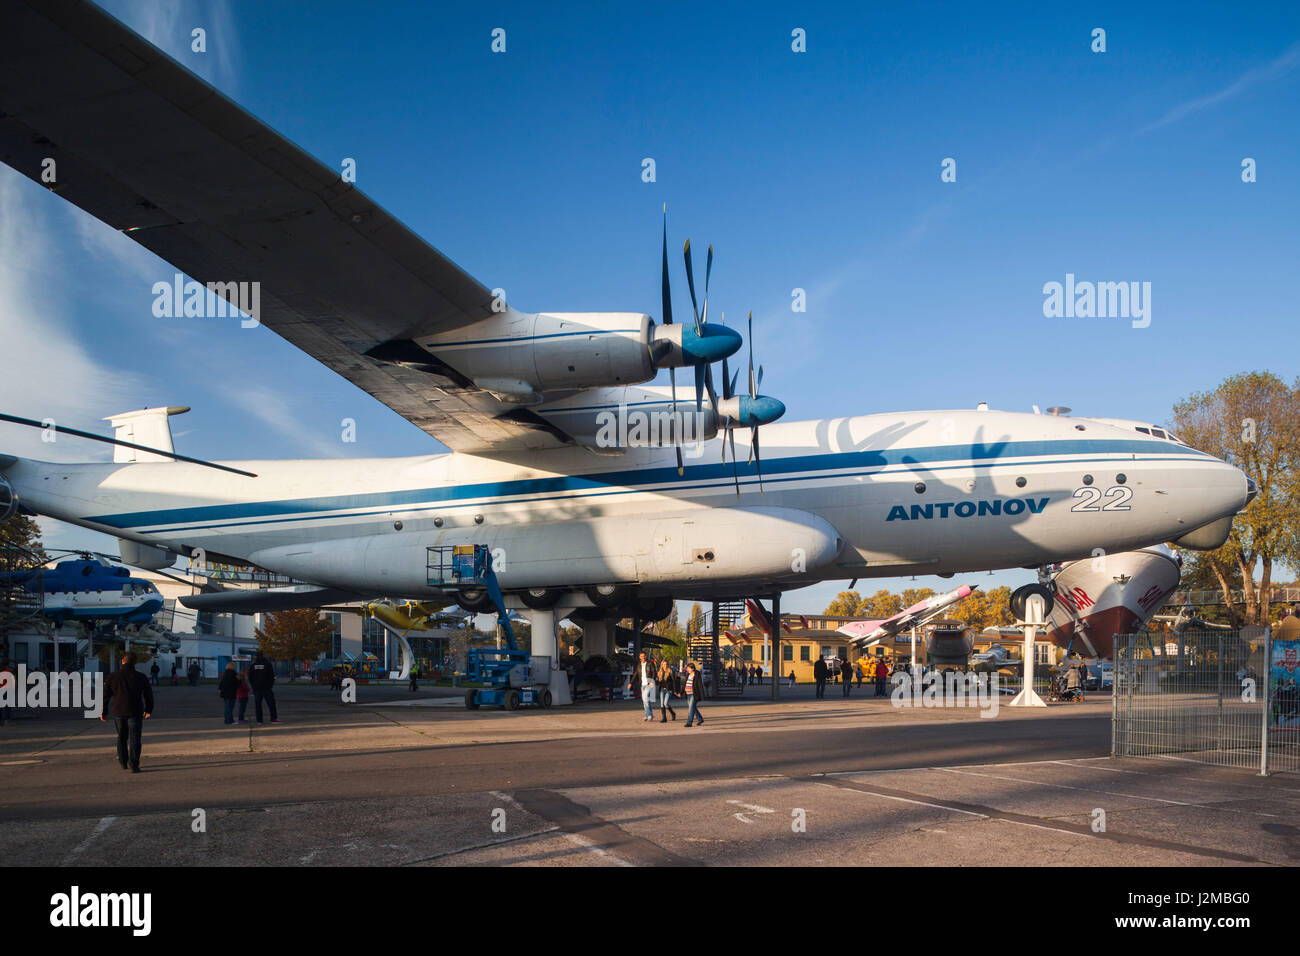 Germany, Rheinland-Pfalz, Speyer,Technik Museum Speyer, Russian Antonov AN-22, jumbo cargo aircraft - Stock Image